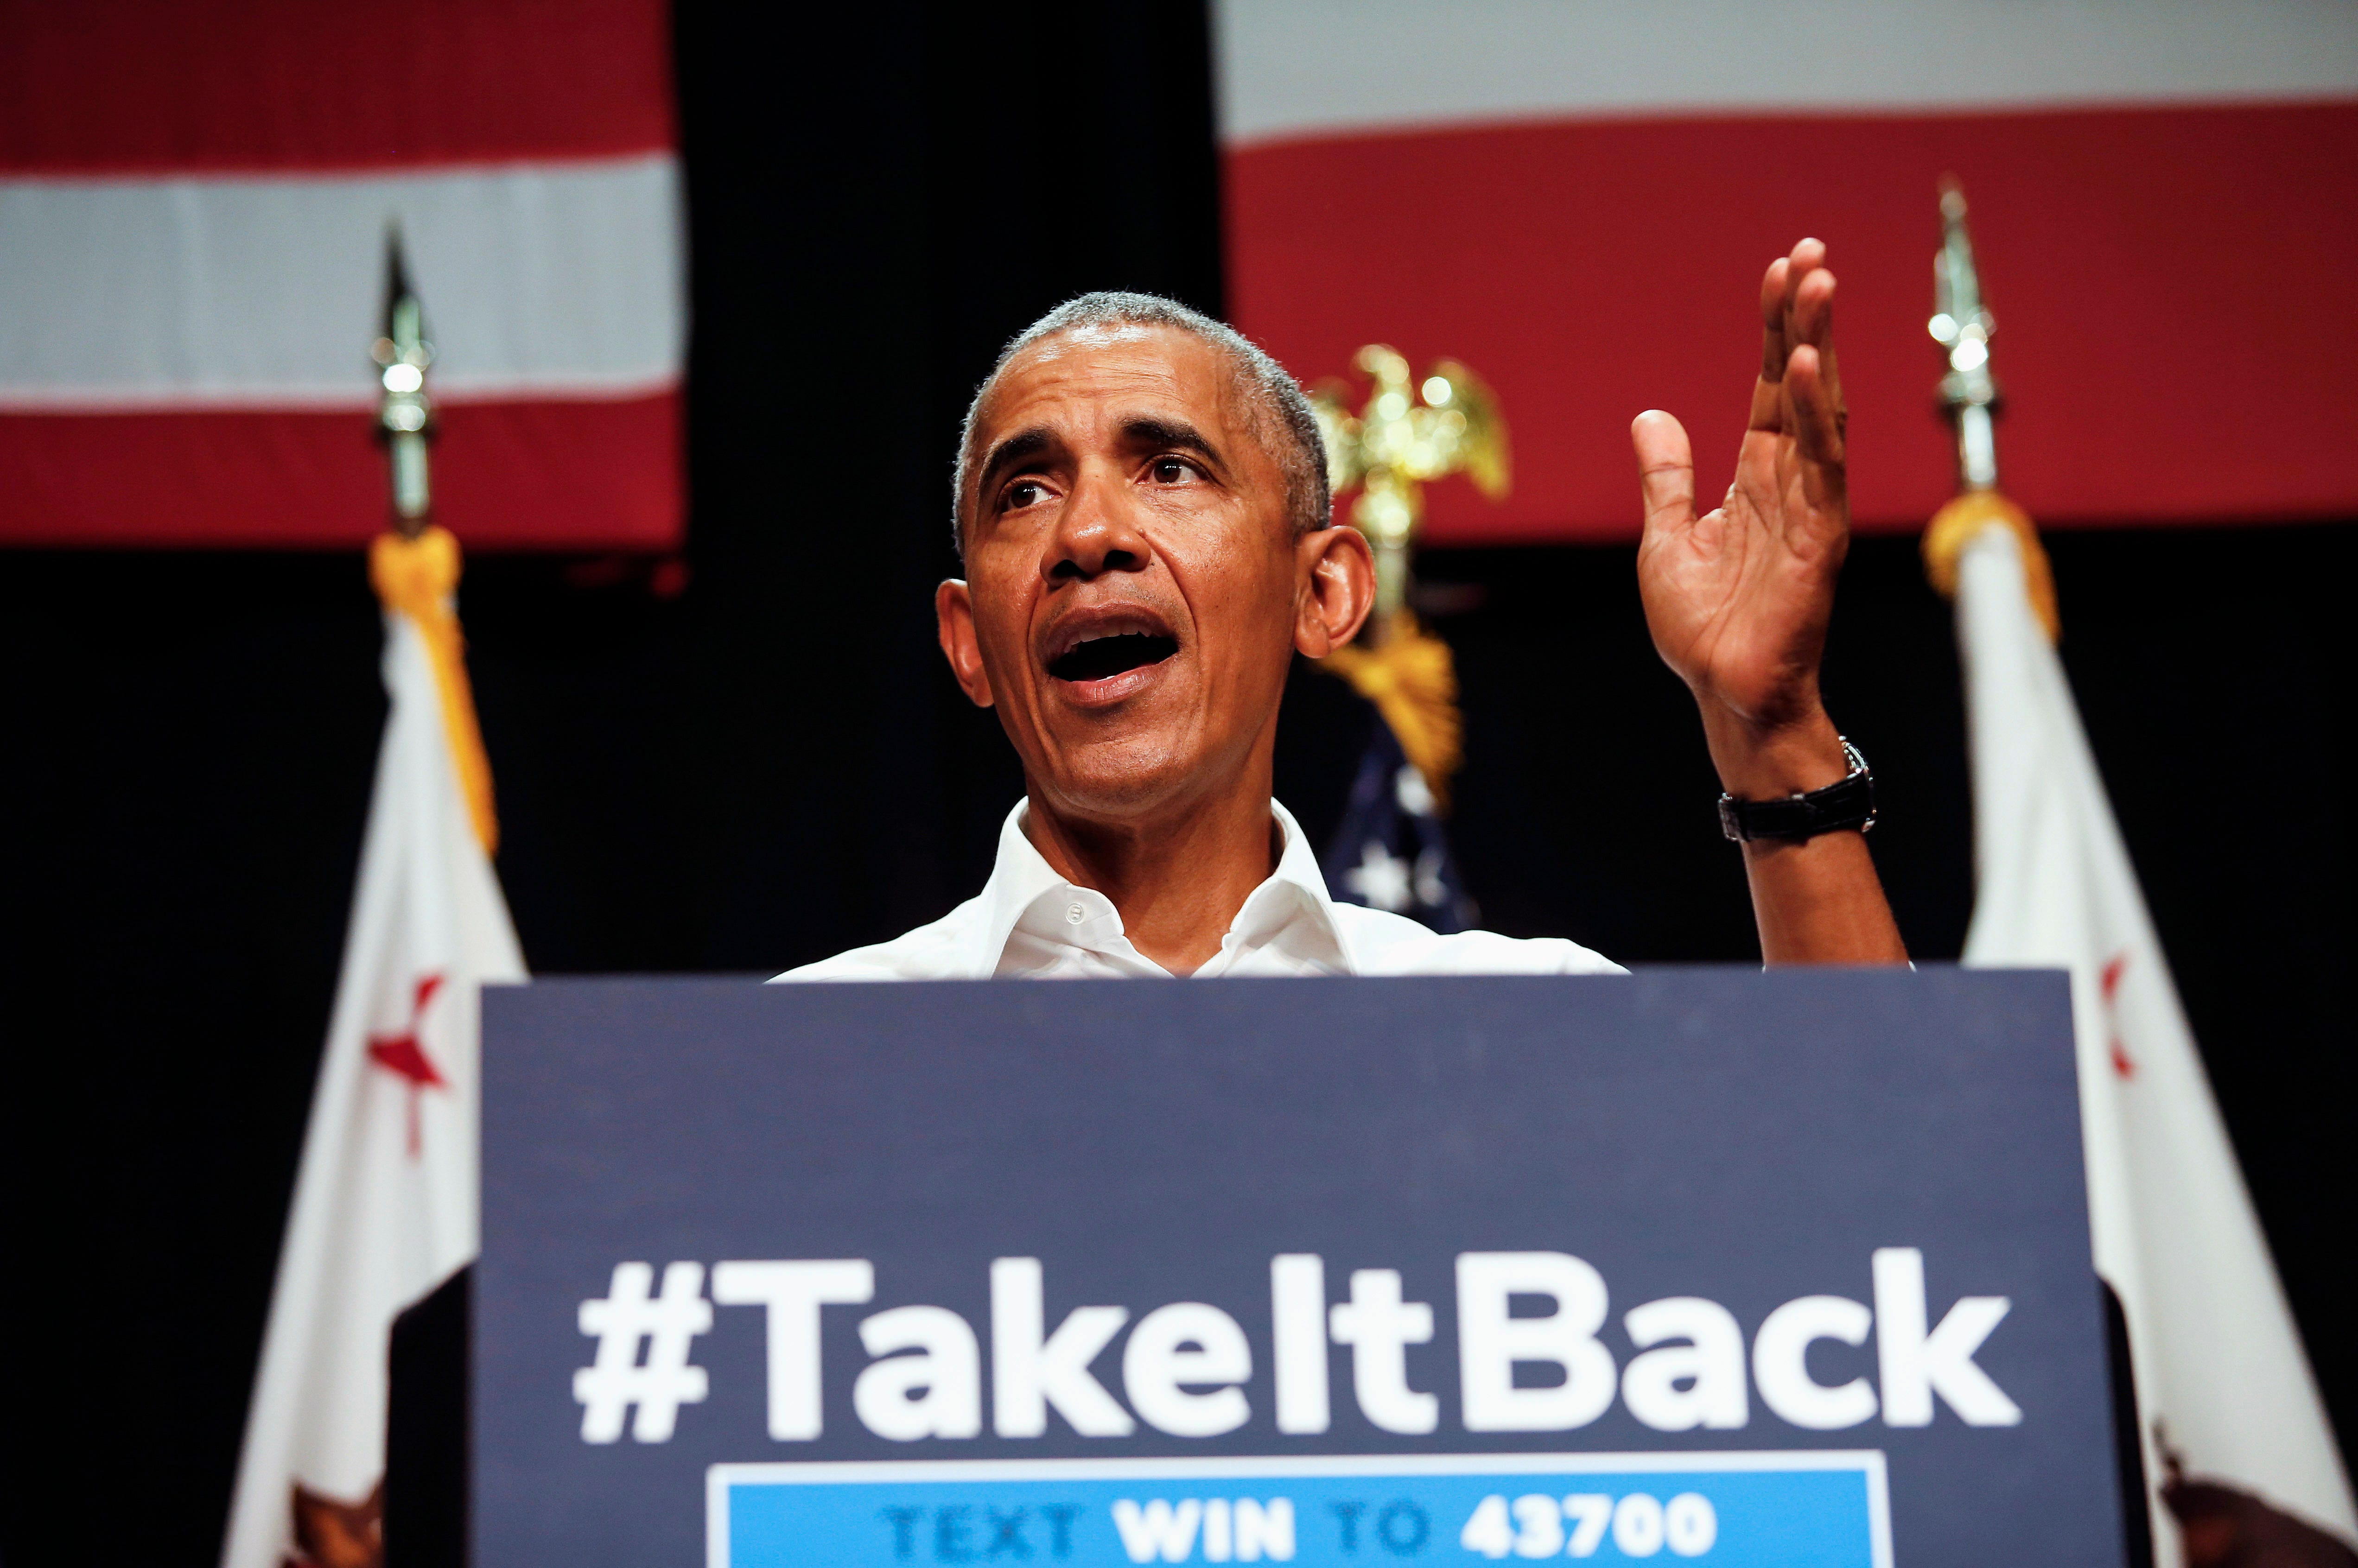 'We have a chance to restore some sanity': Obama takes softer approach toward Trump